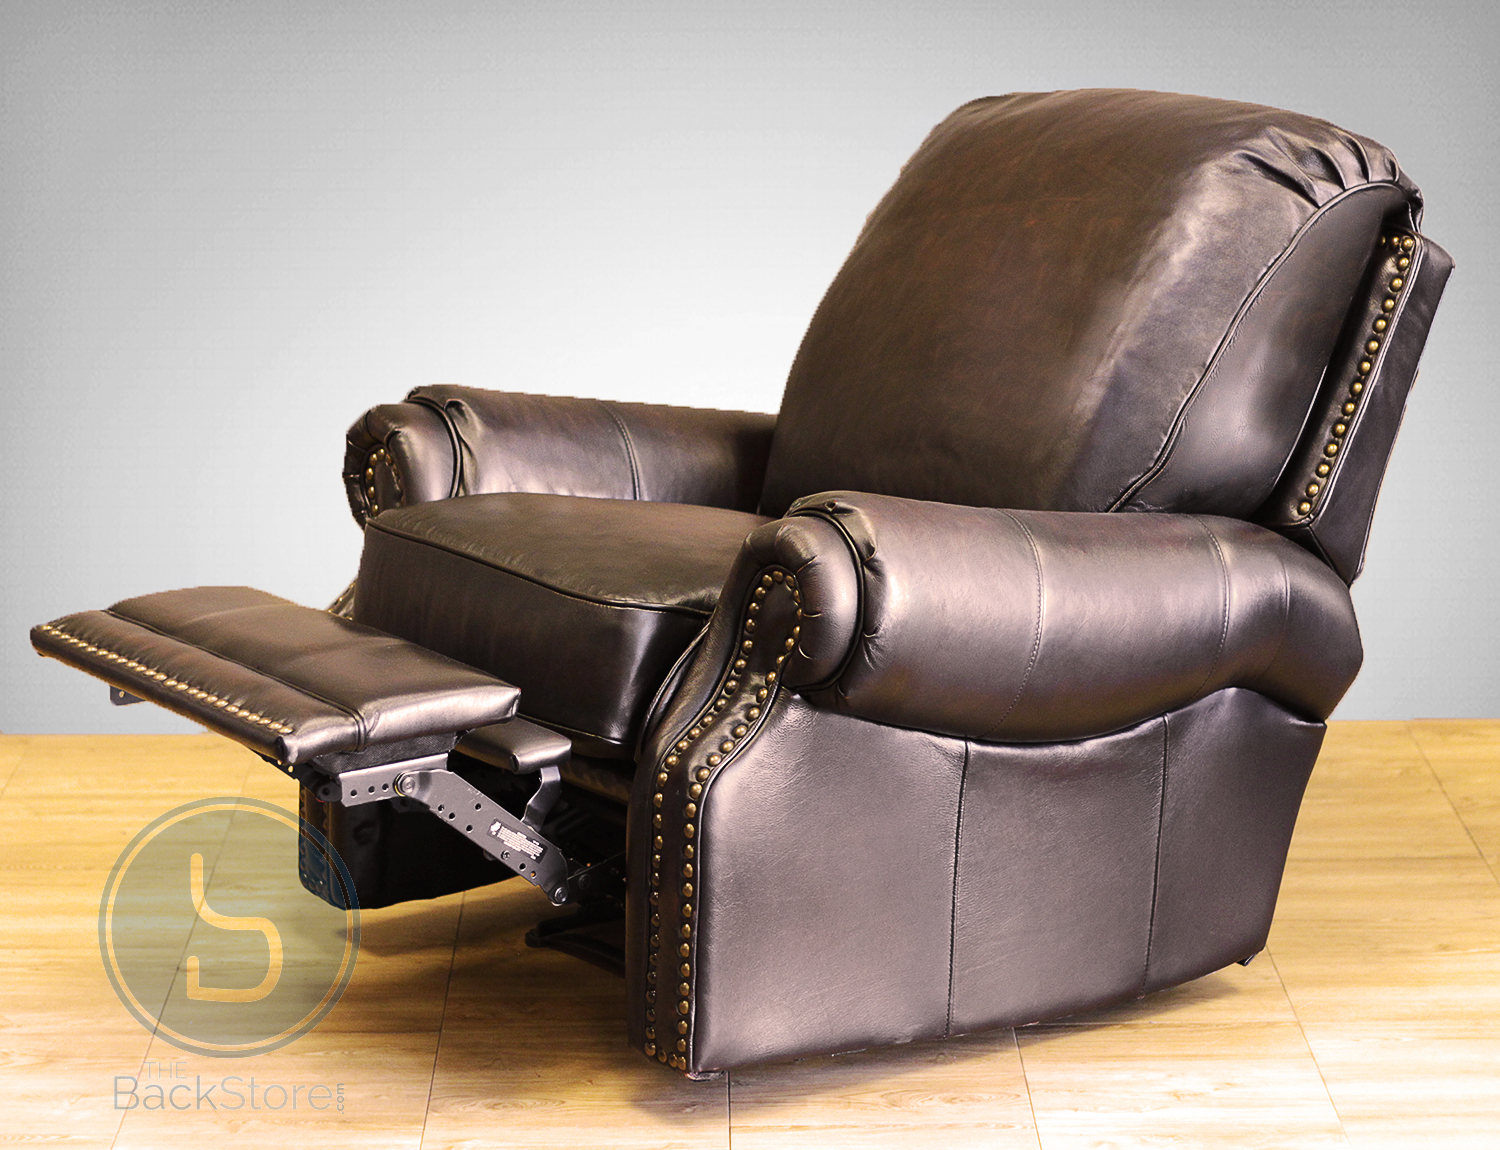 office recliners. Barcalounger Premier II Recliner Chair Chaps Saddle Leather Office Recliners R